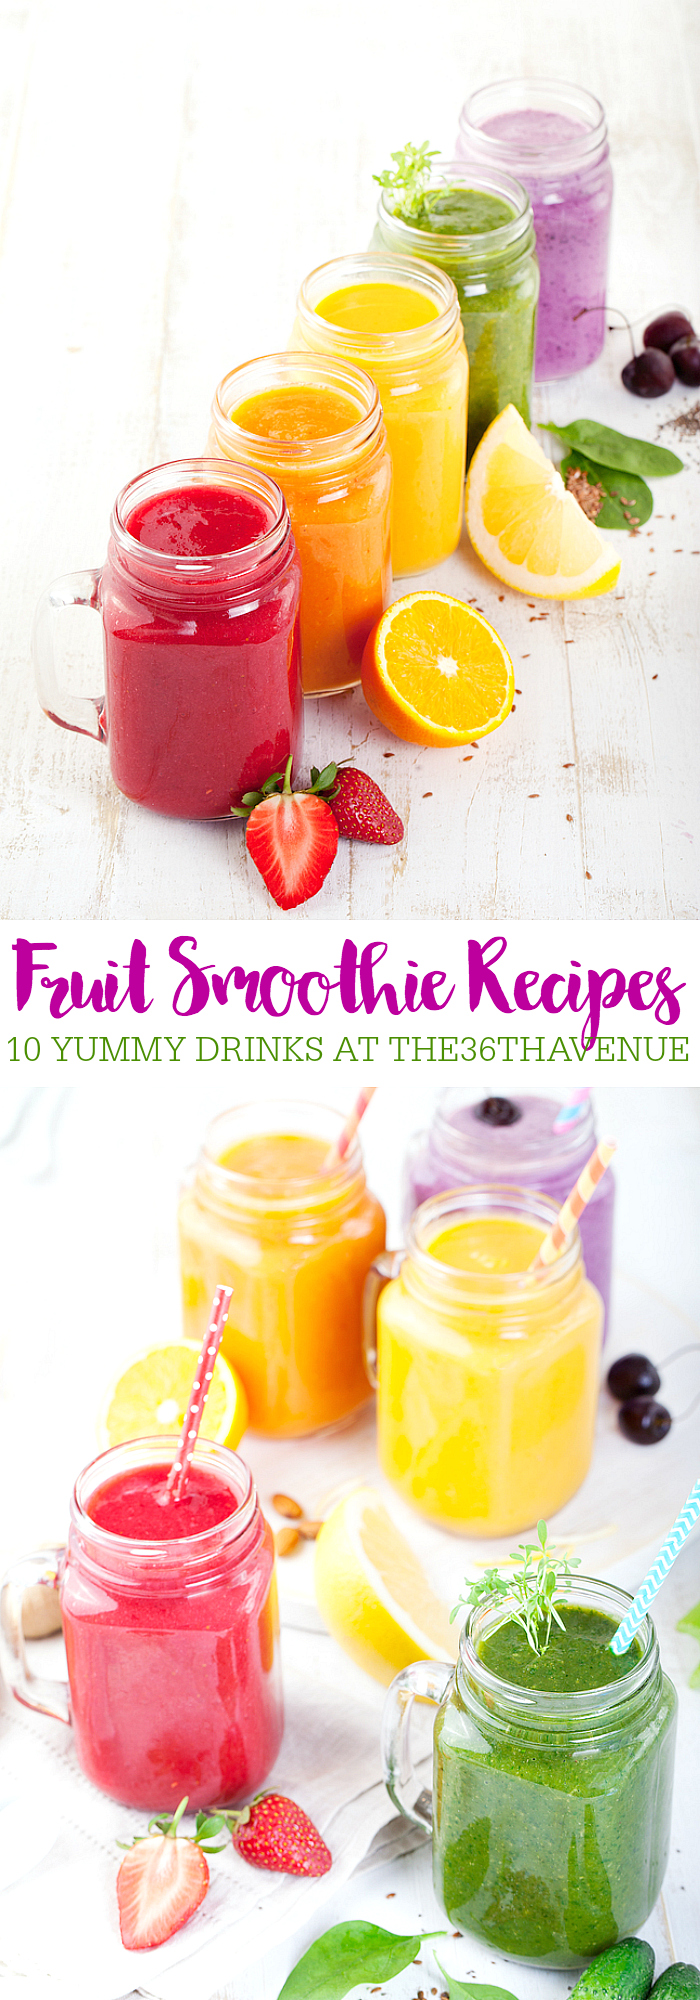 Fruit Smoothie Recipes at the36thavenue.com